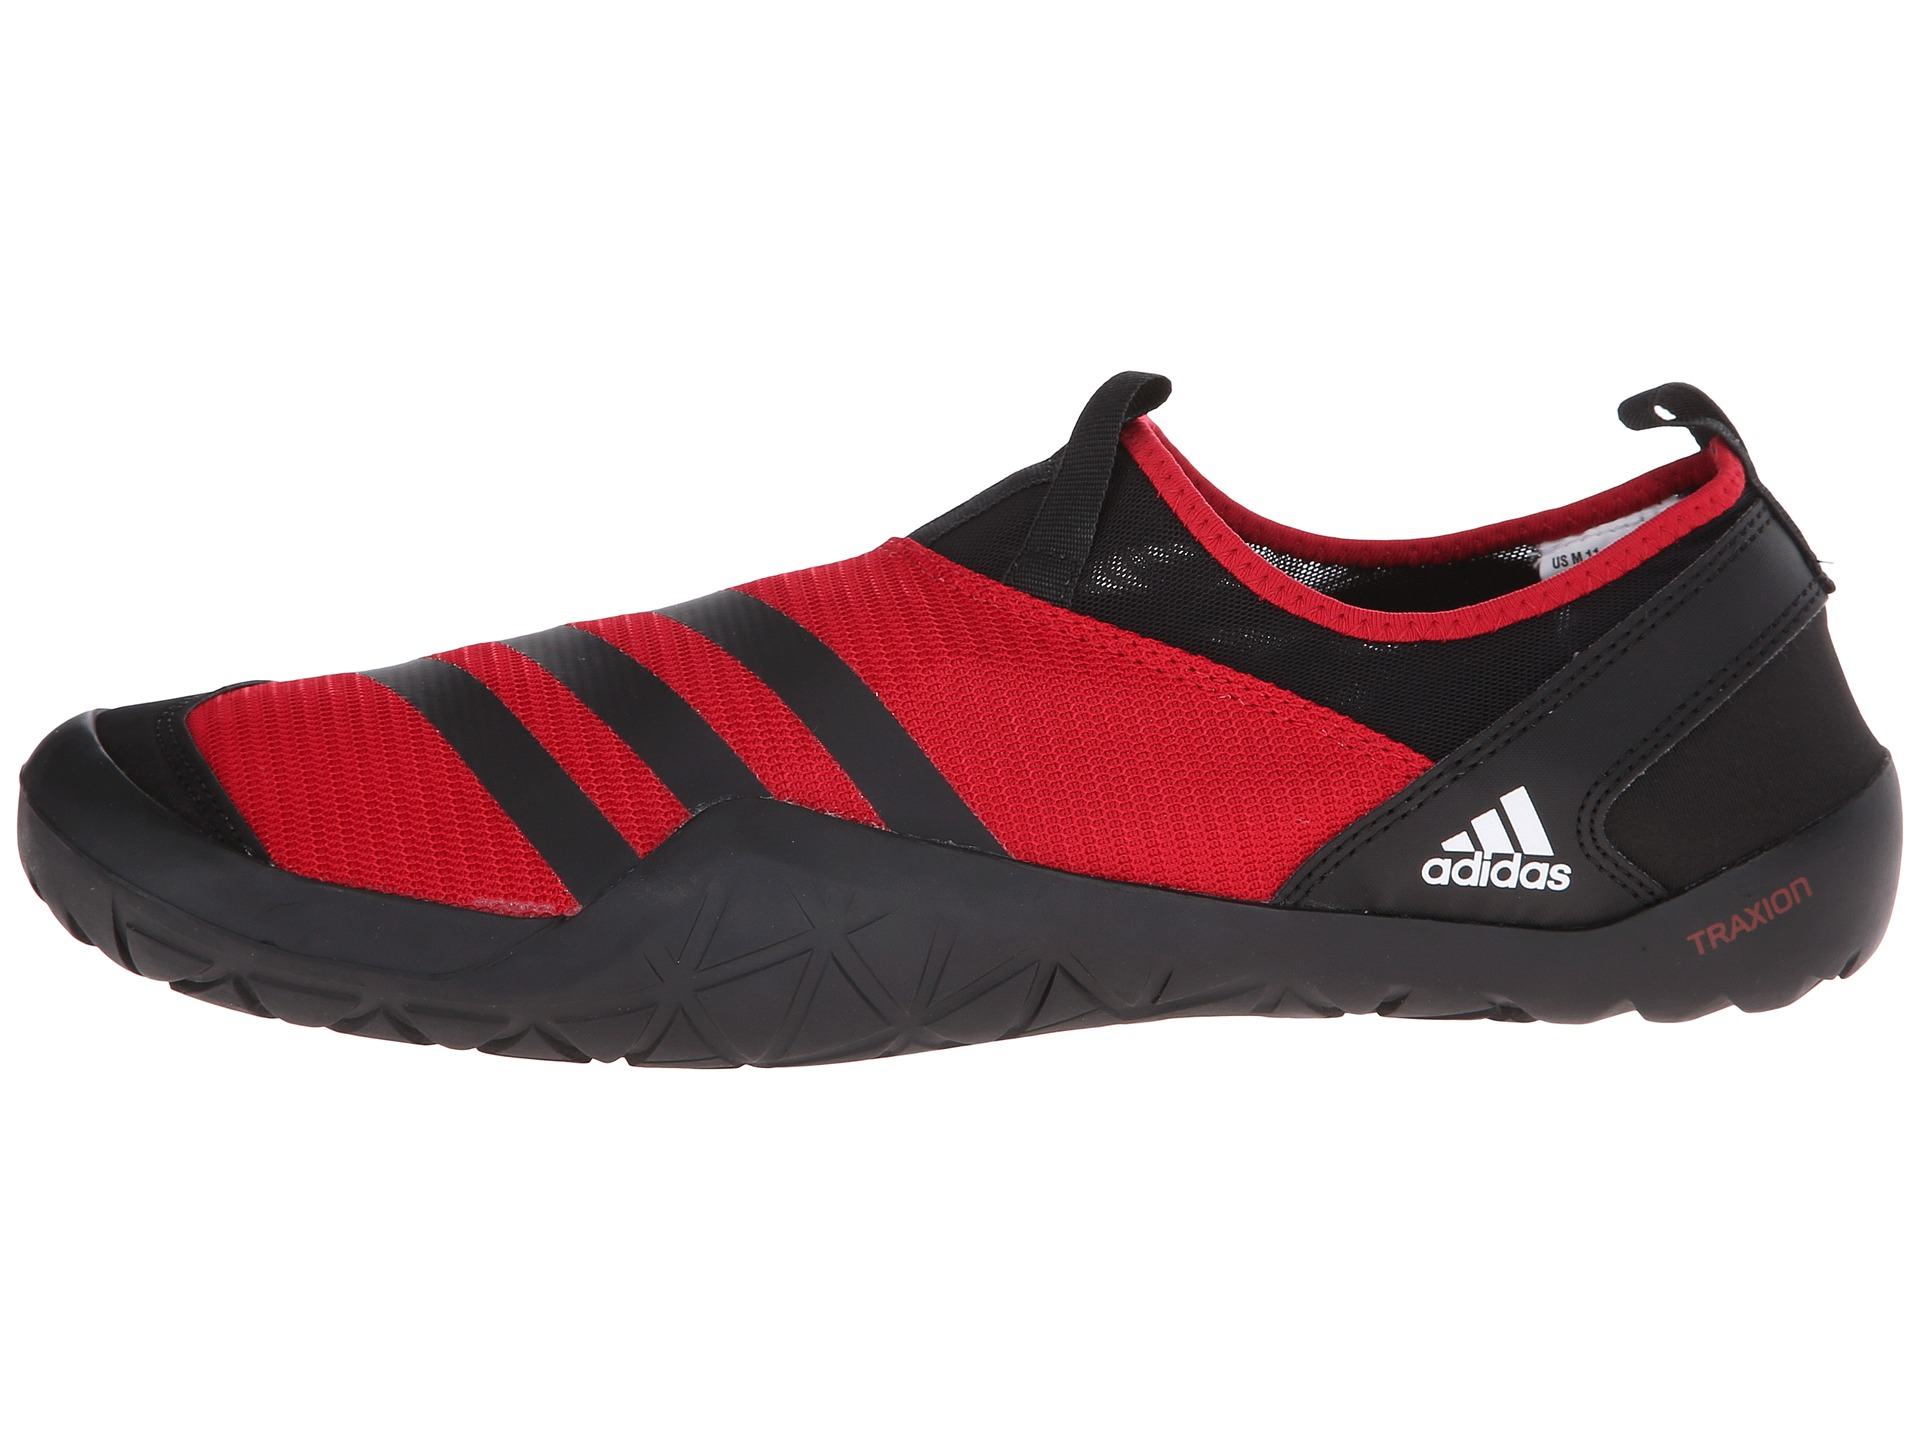 Lyst - adidas Originals Climacool® Jawpaw Slip-on in Red for Men 906205aeb4b4